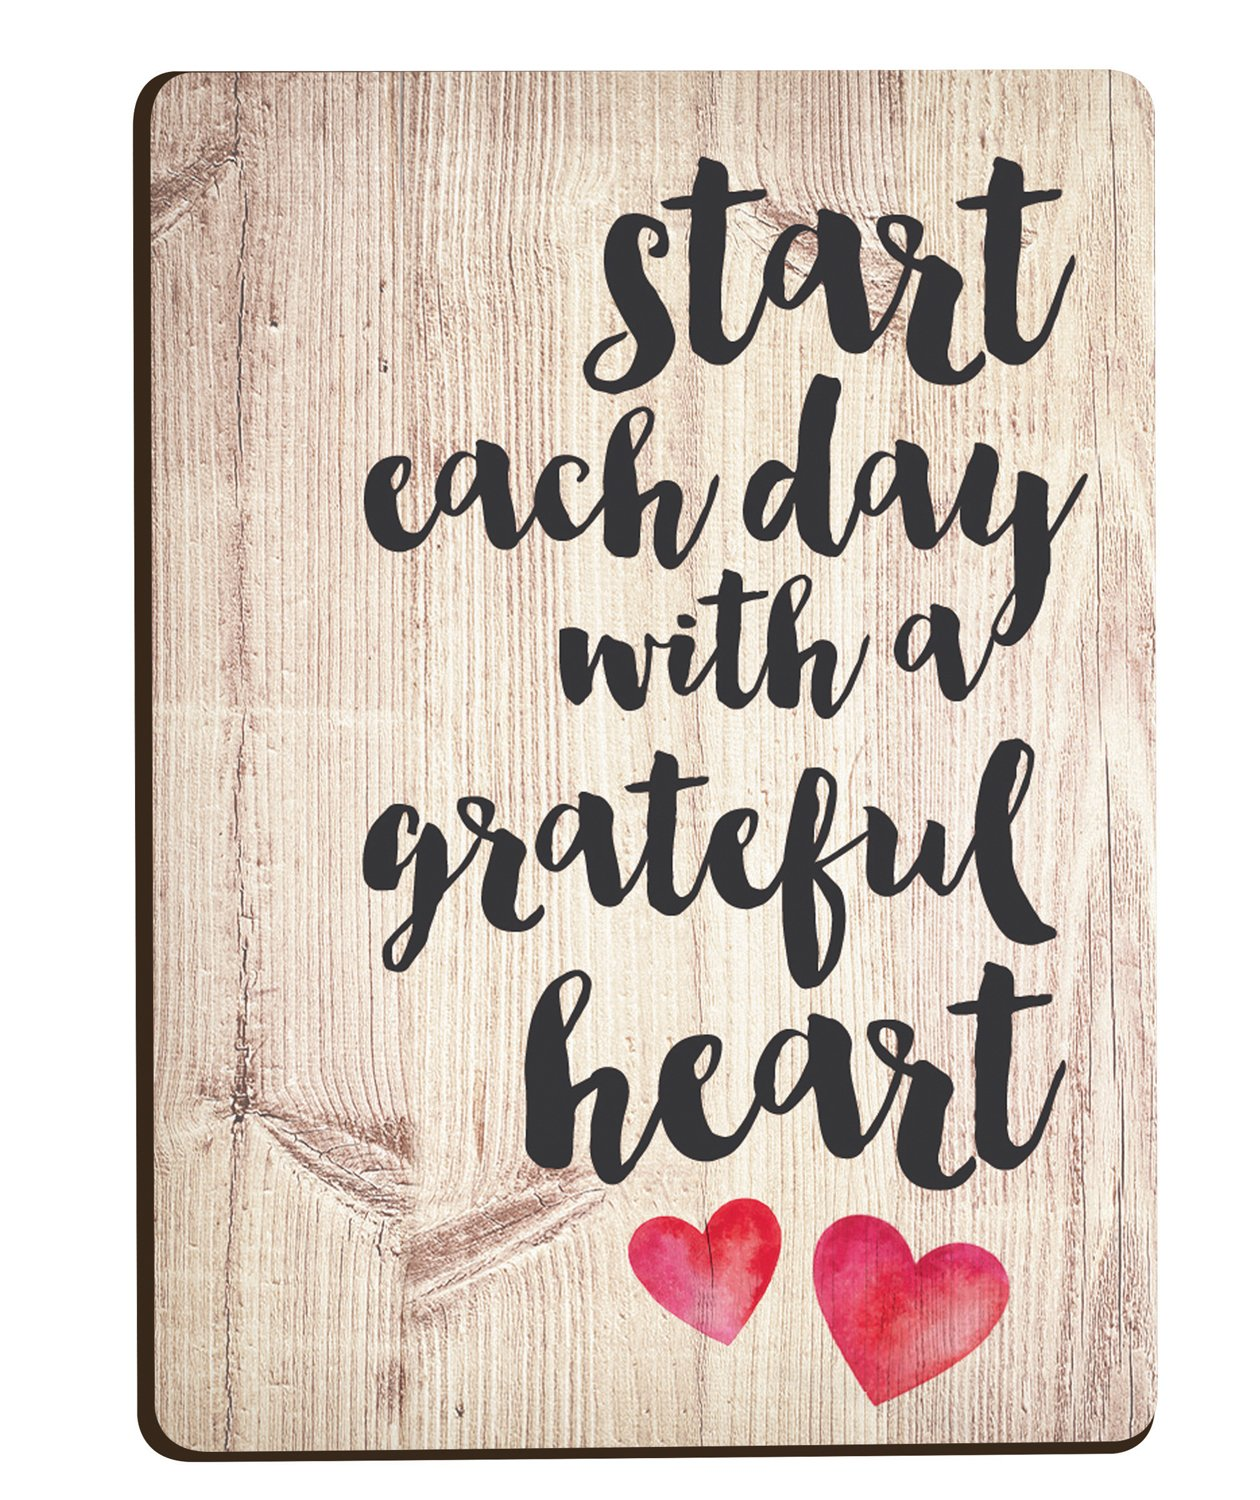 Start Each Day Script Red Heart Distressed Wood Look 3 x 4 Inch Wood Lithograph Magnet P Graham Dunn MGT0208